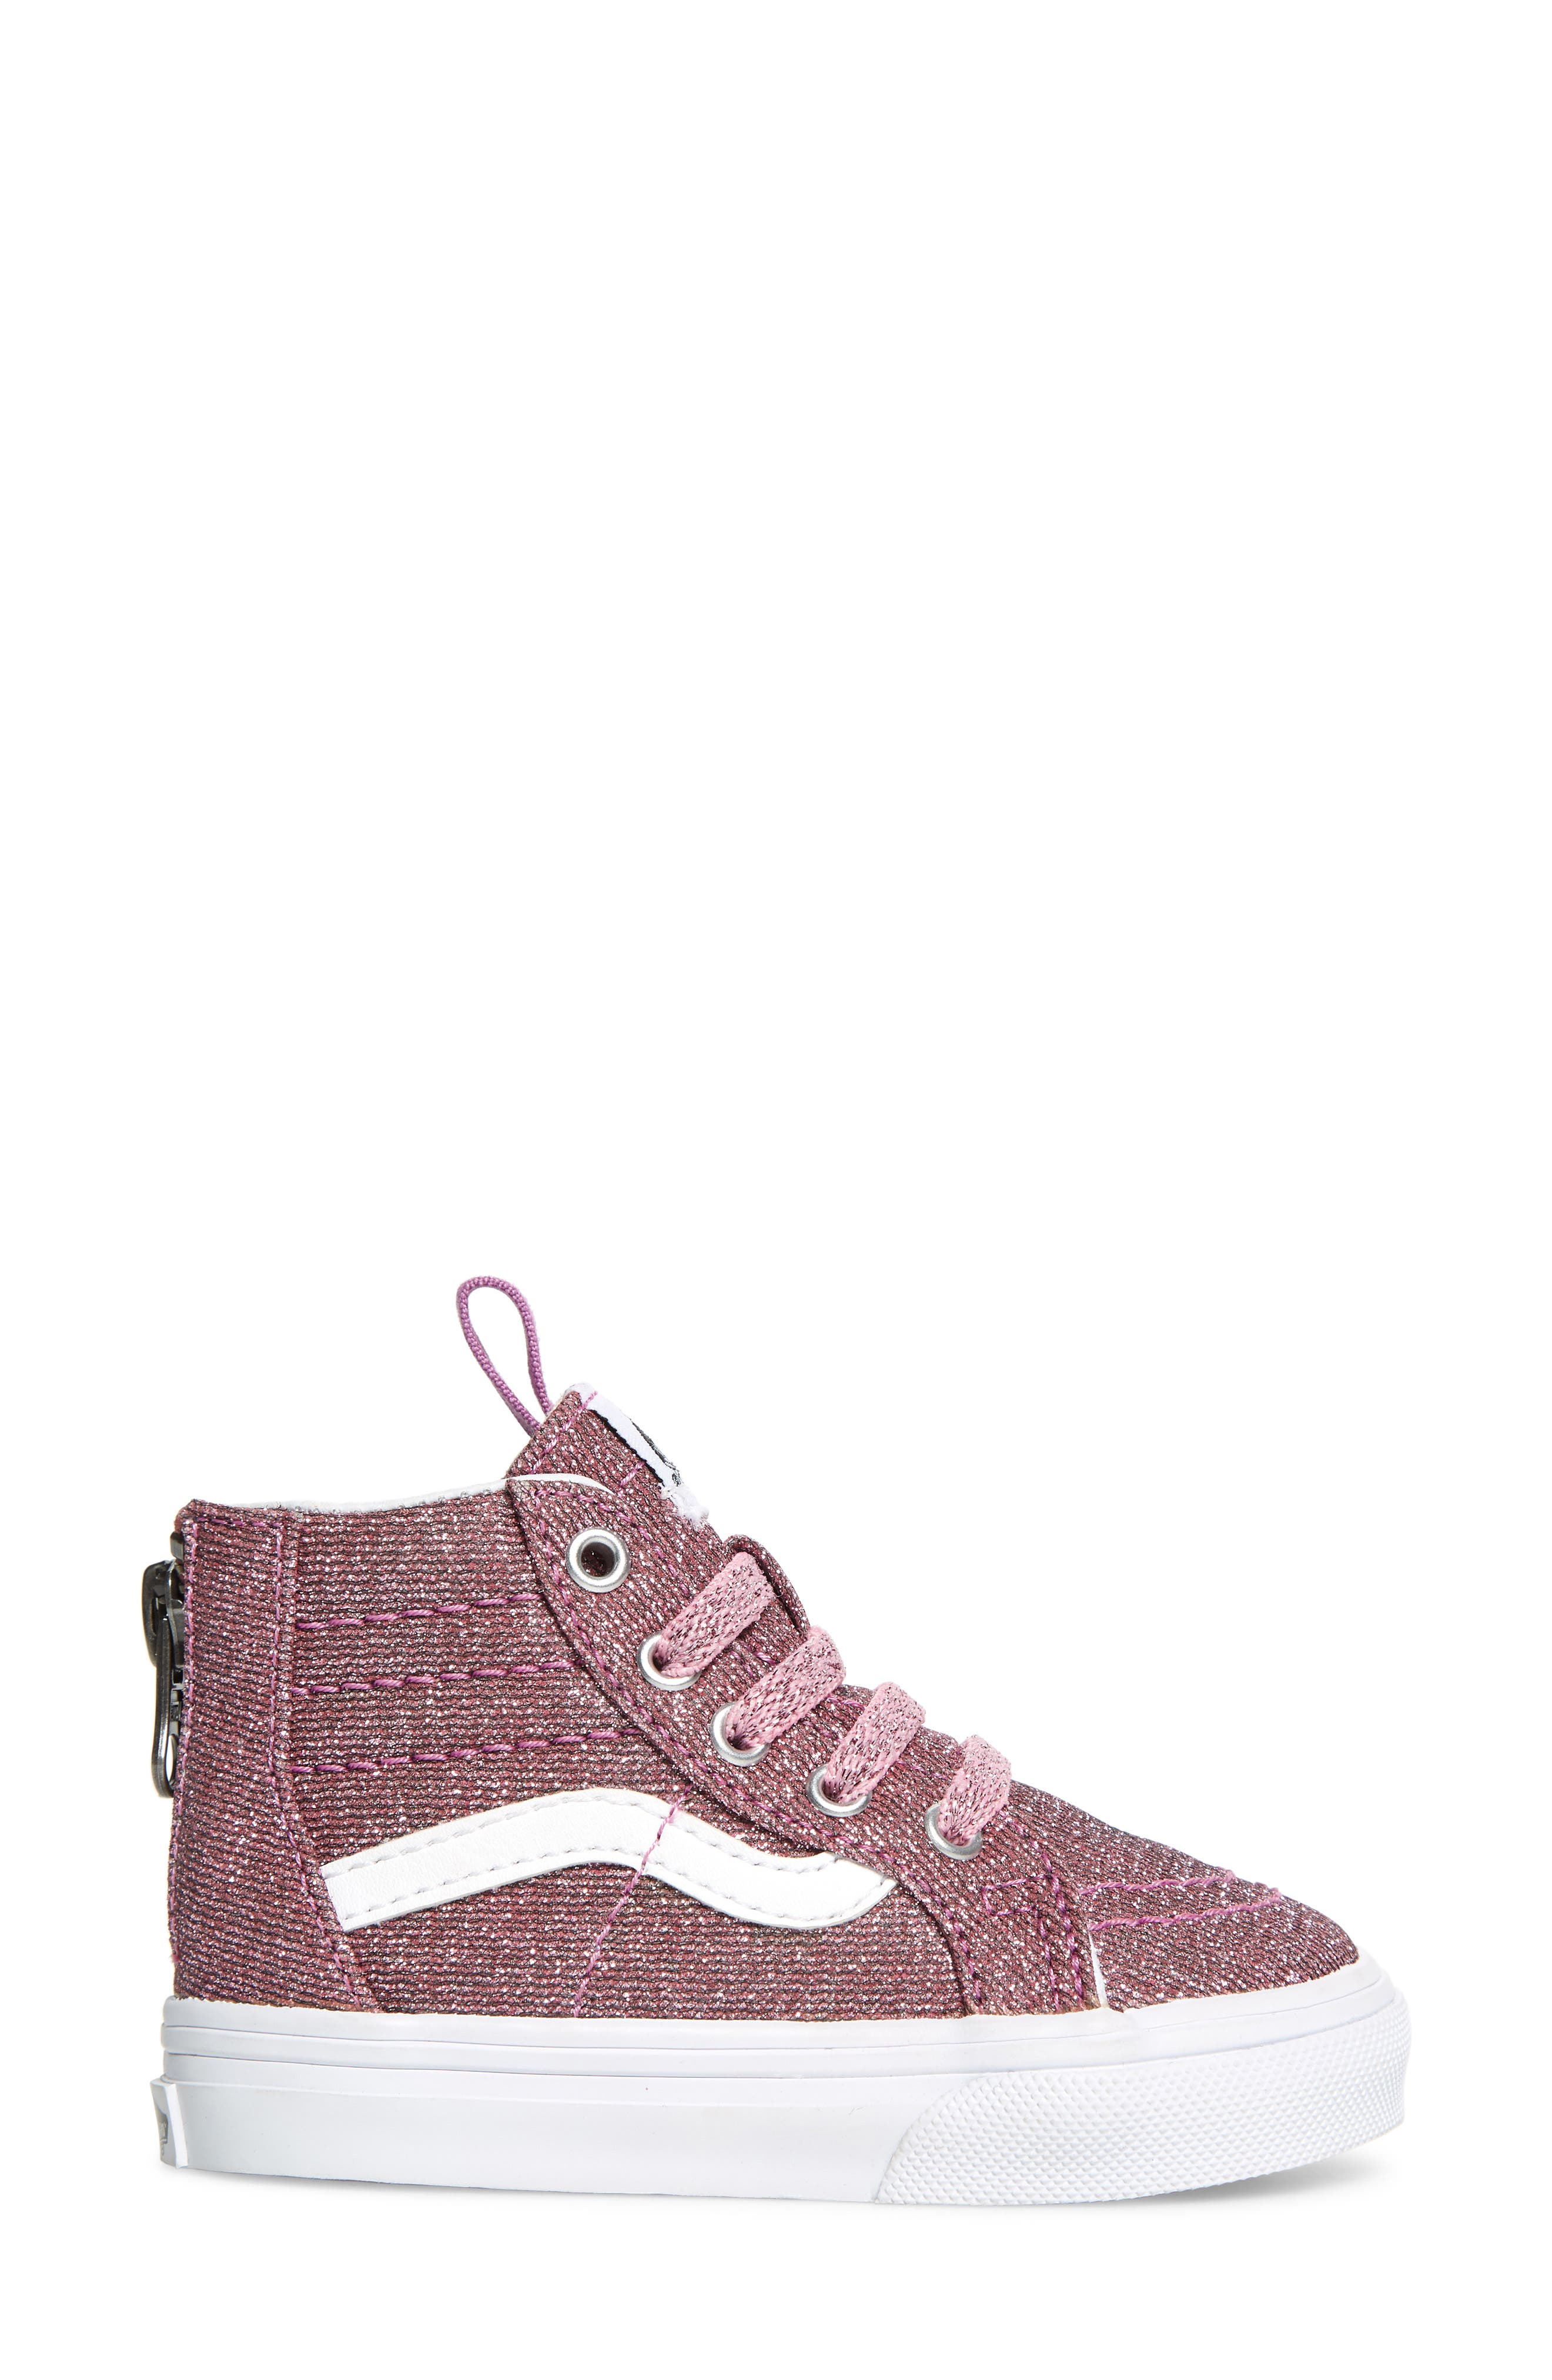 Sk8-Hi Zip Sneaker,                             Alternate thumbnail 3, color,                             LUREX GLITTER PINK/ TRUE WHITE